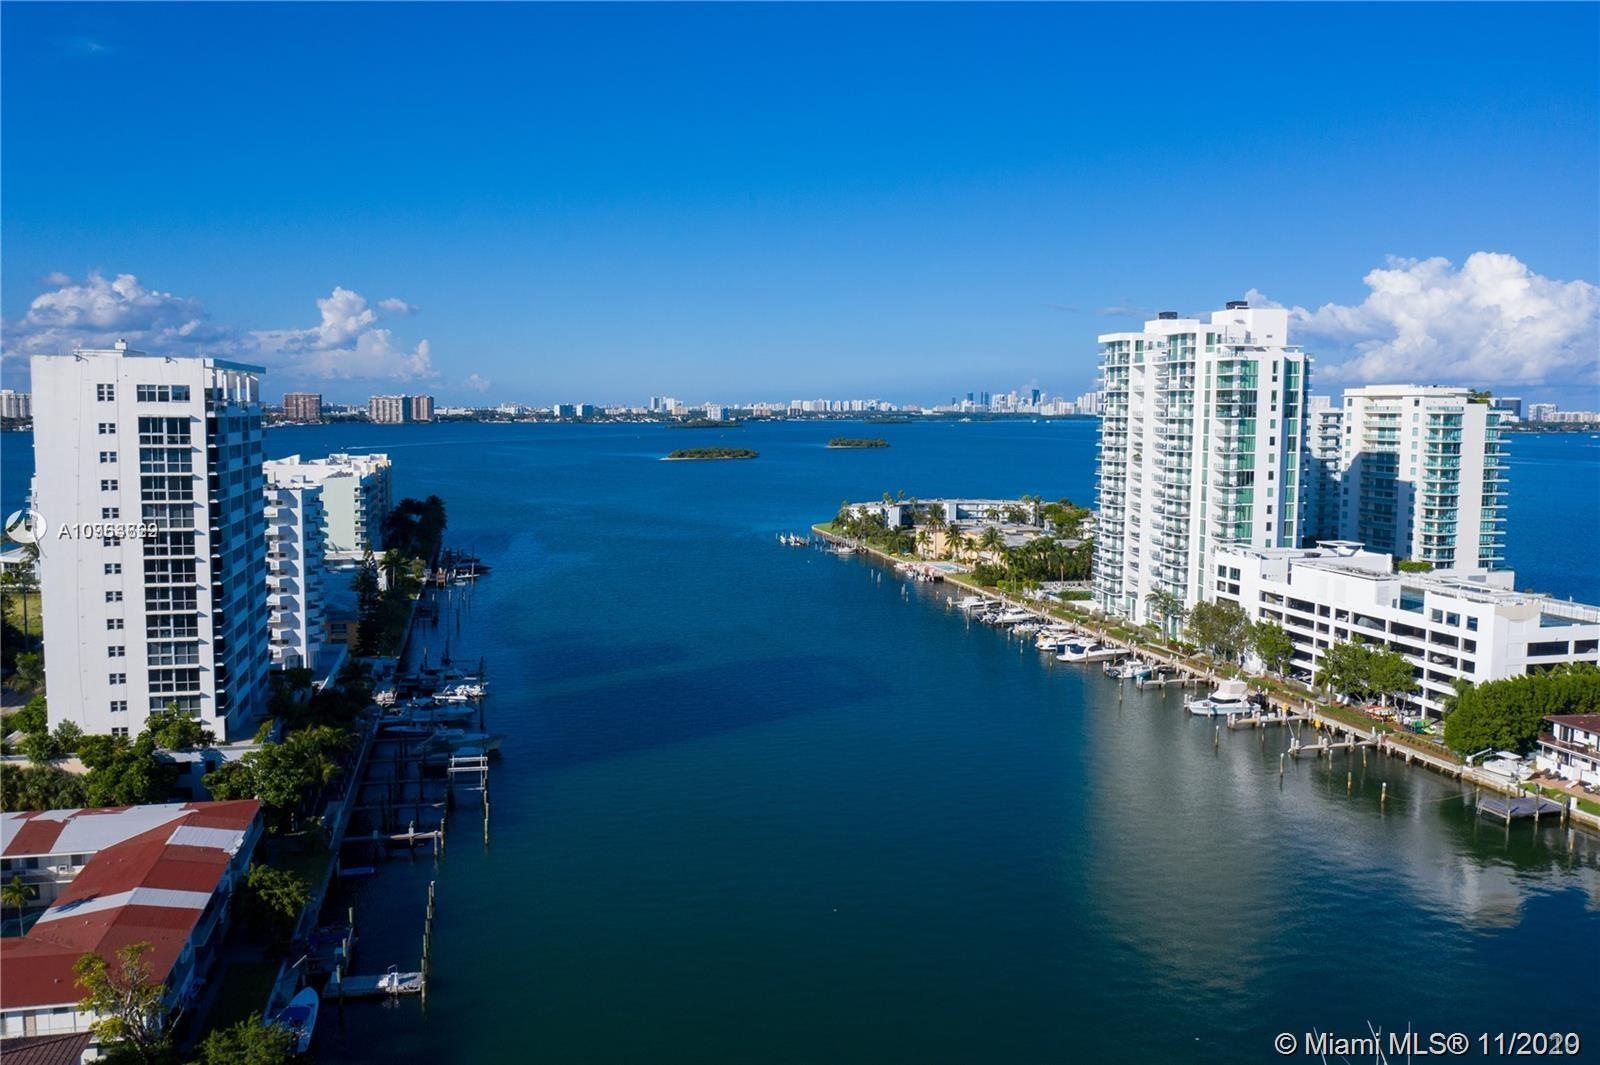 Luxurious condo in one of the most desired communities with an amazing bay view. This impeccable 3 bedroom, 2 bath unit is beautifully furnished and fully equipped with top of the line stainless steel appliances. Gated community with 24hr security. Amenities include- Two pools, fitness center, covered parking, clubhouse, concierge, valet. Easy to show!